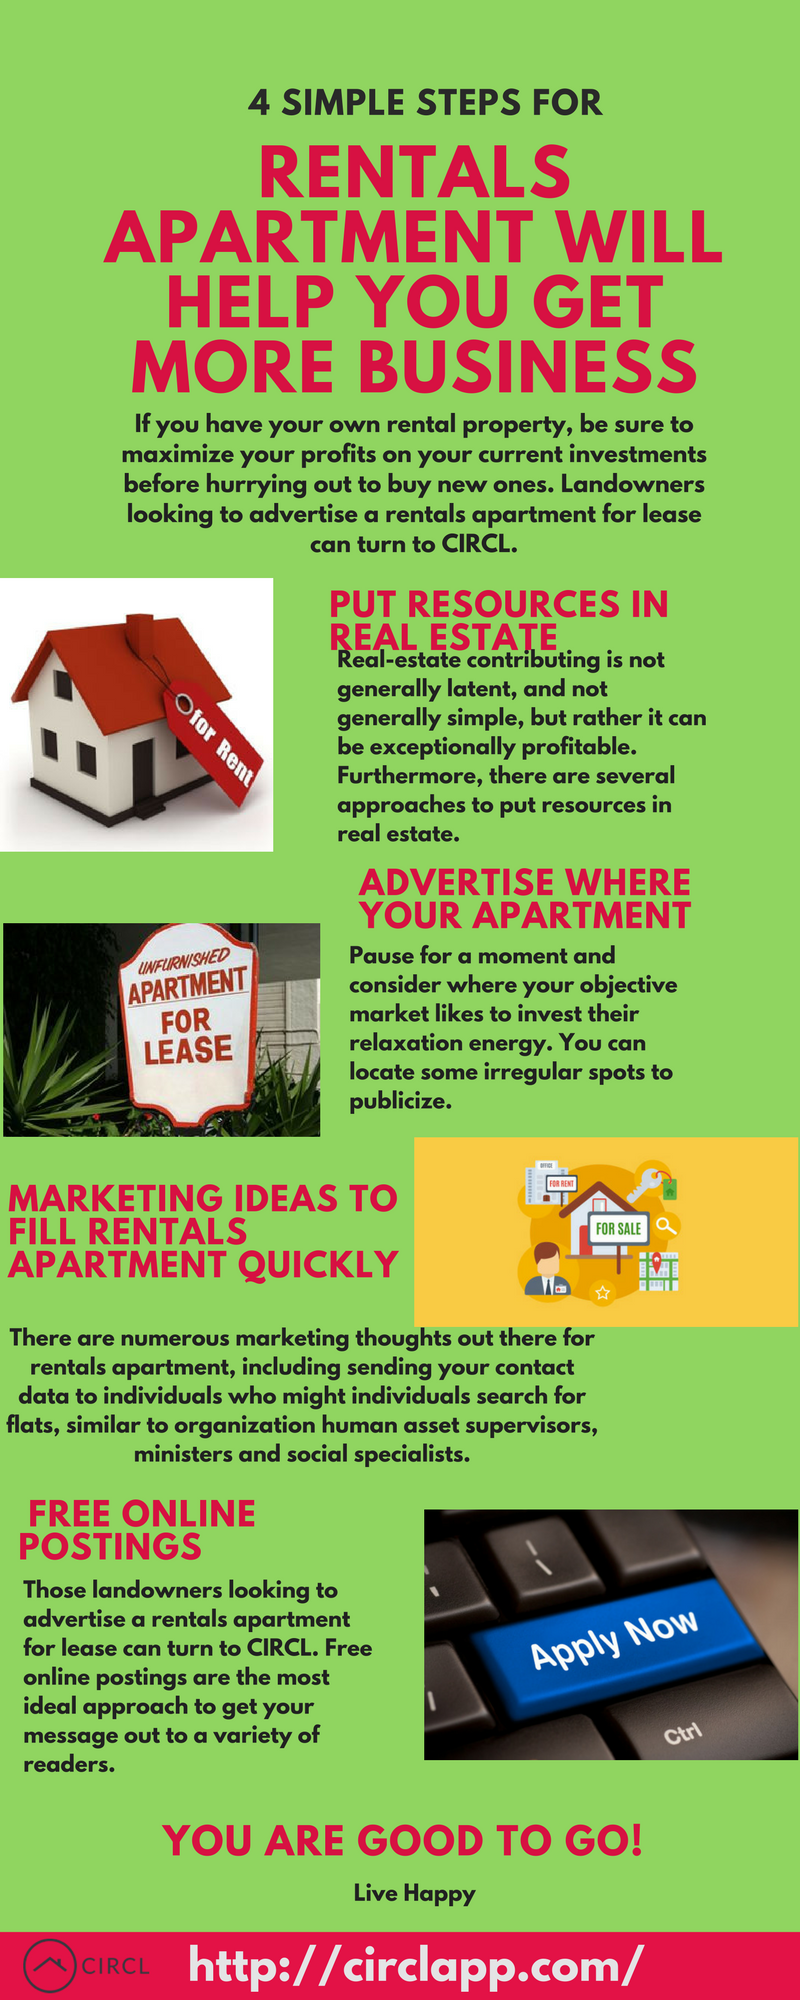 where to advertise rental property for free